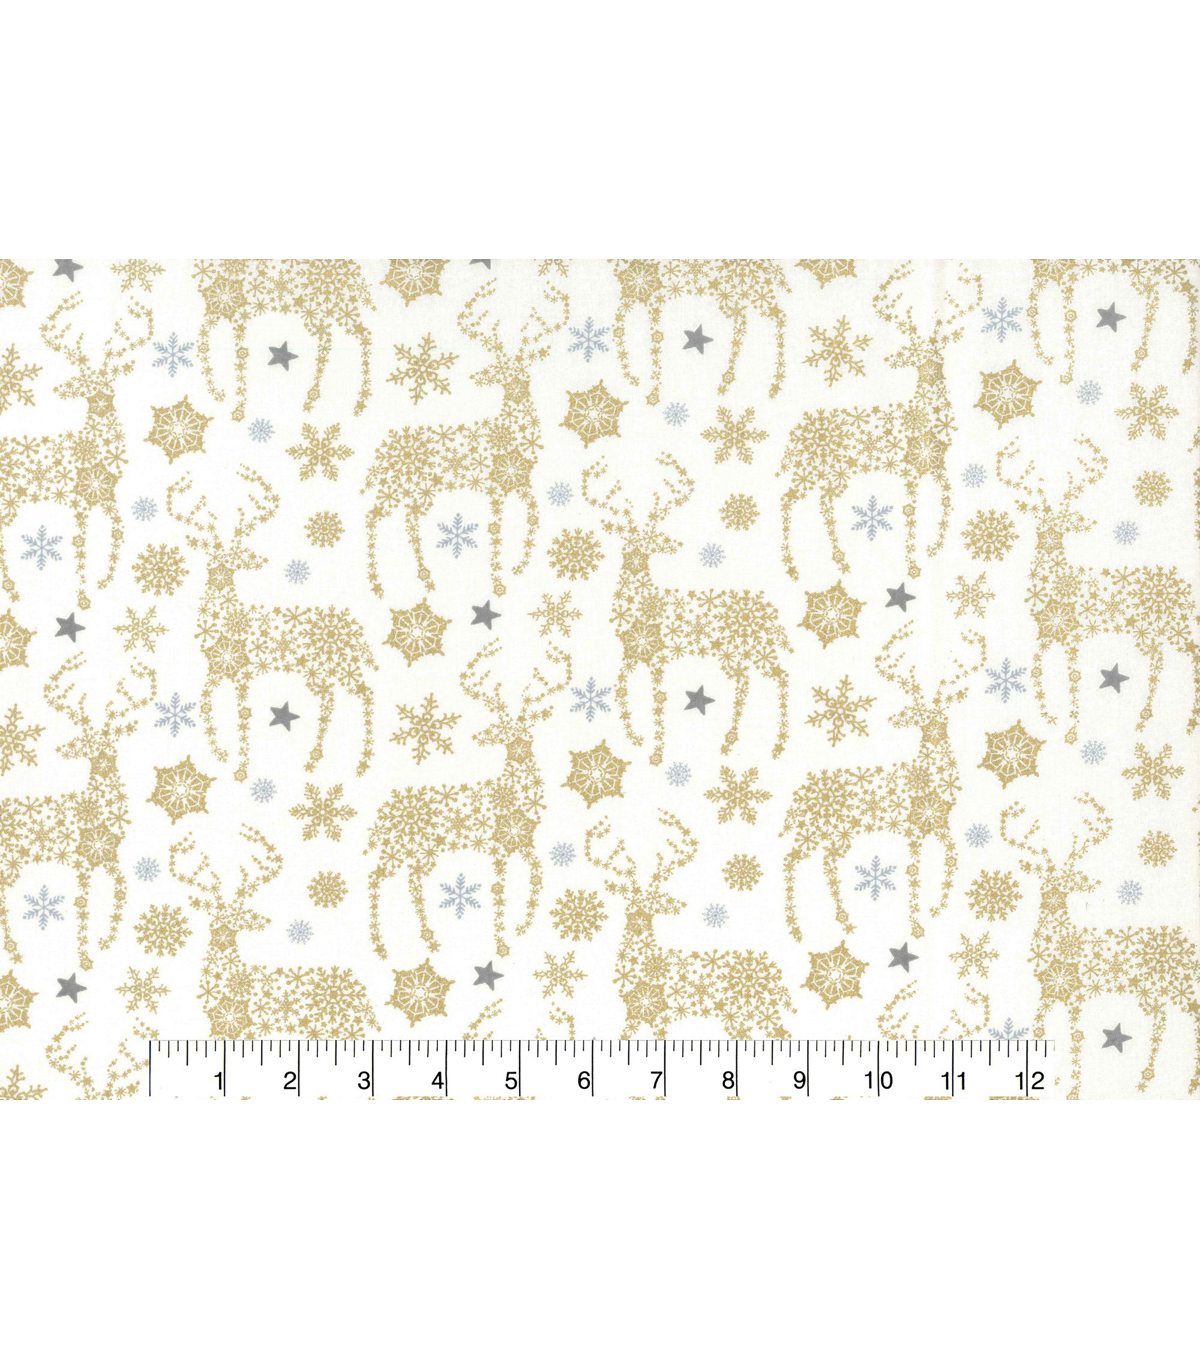 Christmas Cotton Fabric 43\u0022-Gold Metallic Snowflake Deer